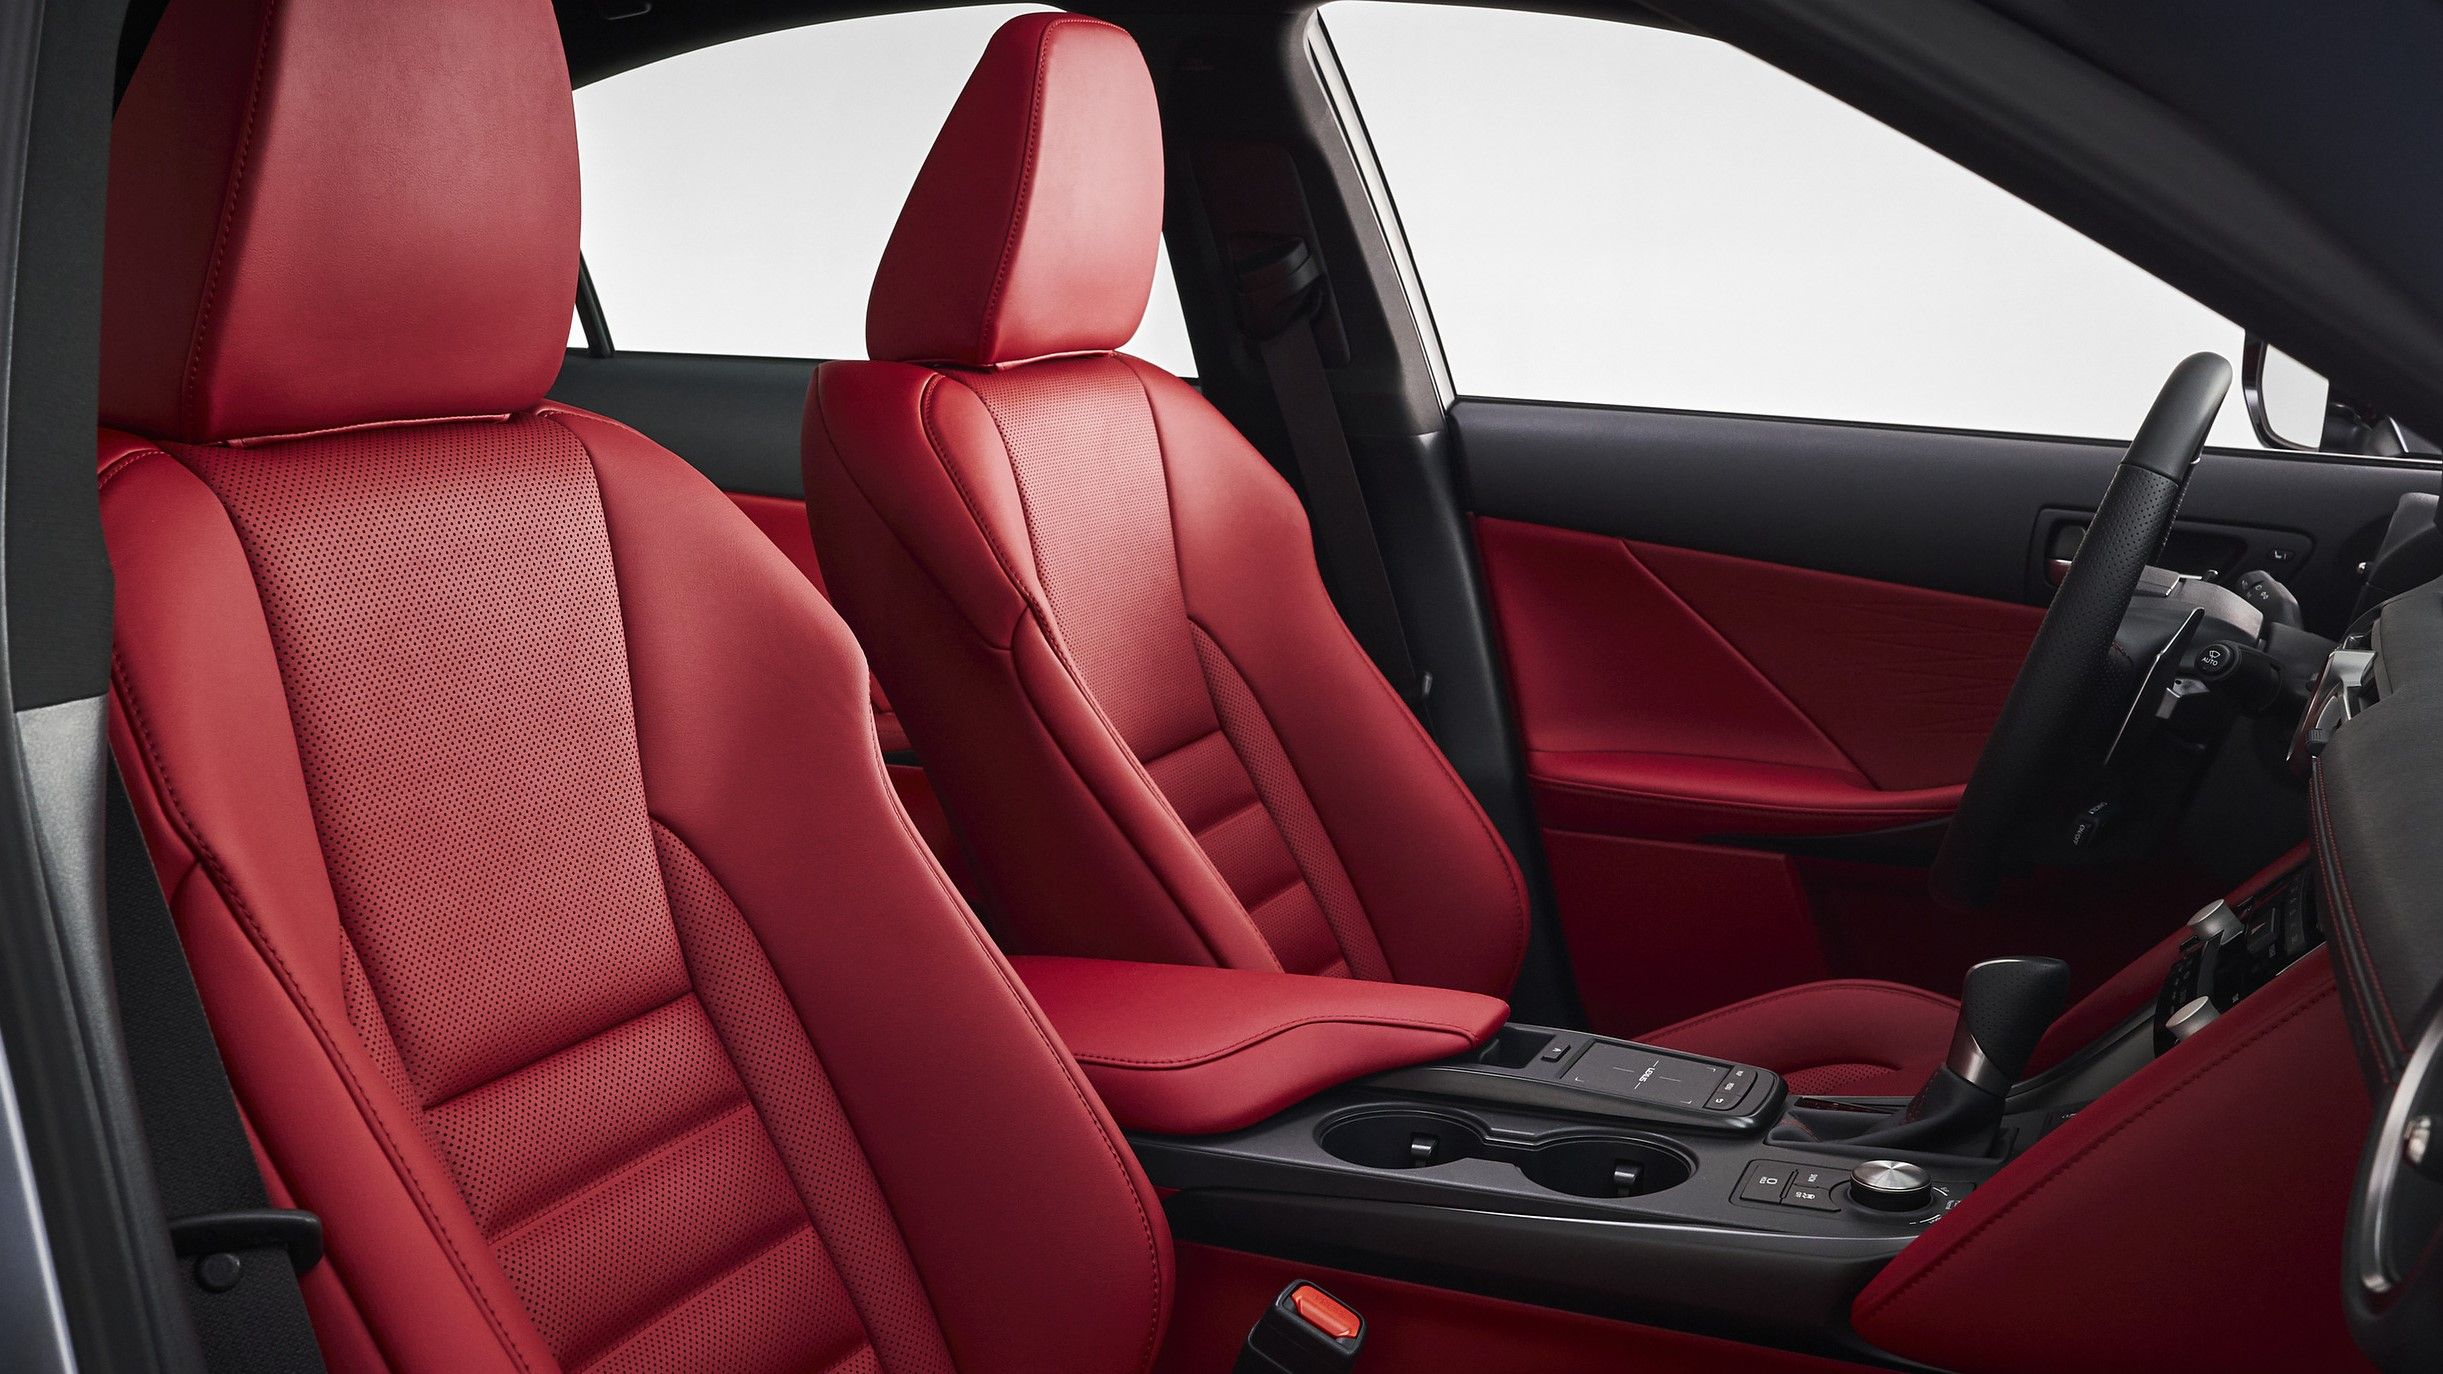 2021 lexus is 350 interior first row seating